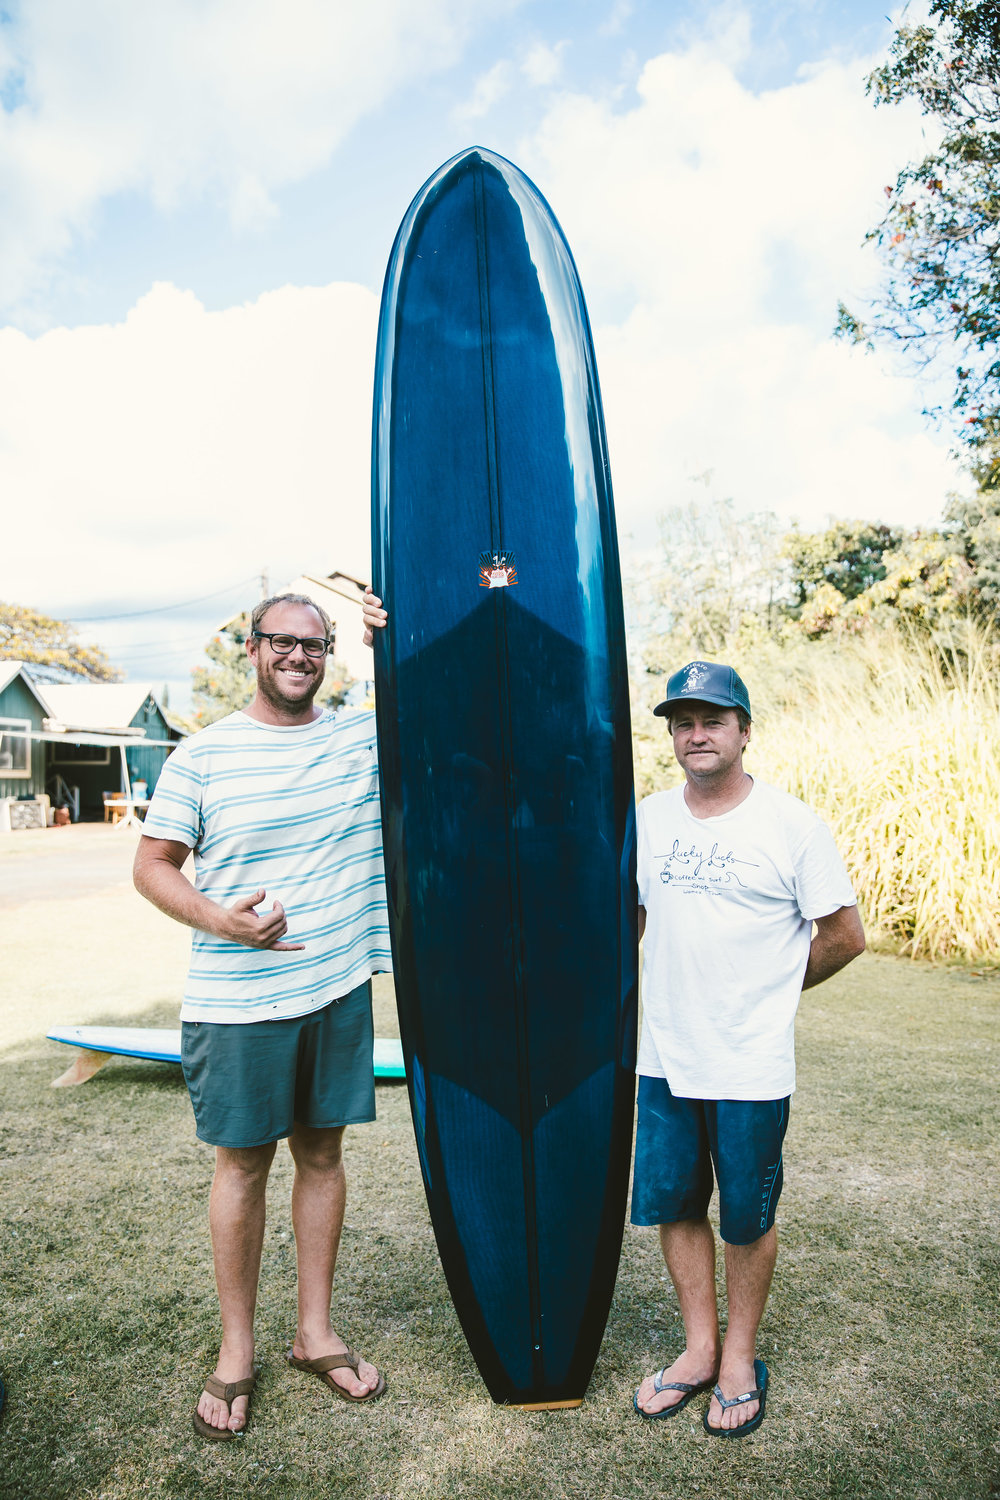 bryce johnson-photography-ebert surfboards-kauai-42.jpg